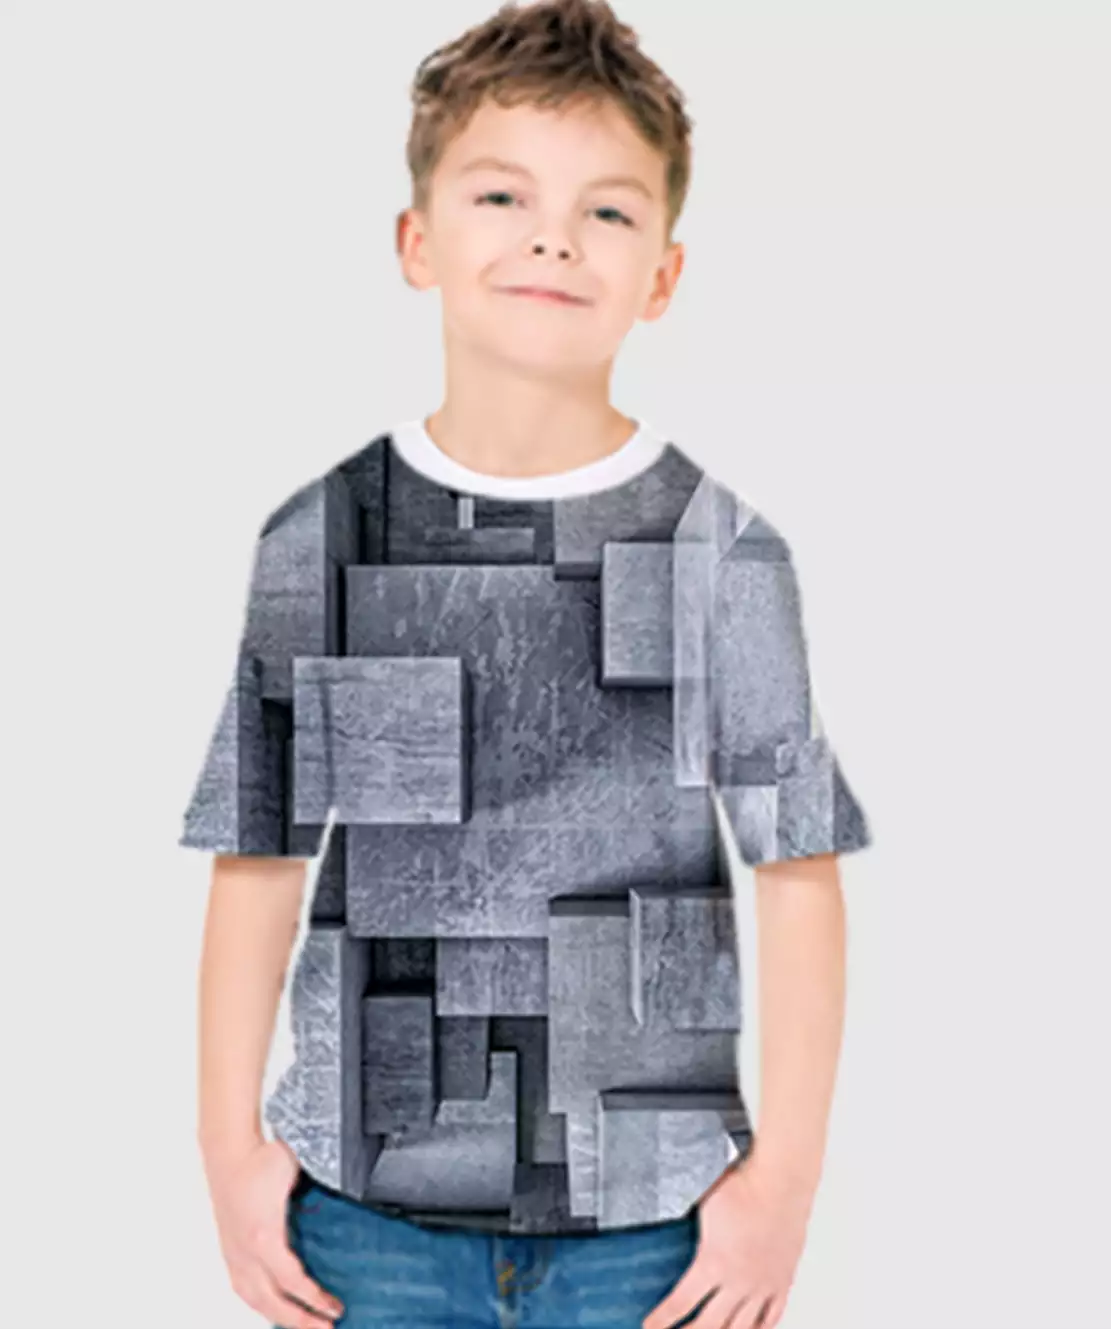 Boys Round Neck Half Printed 3D Blocks T-Shirt